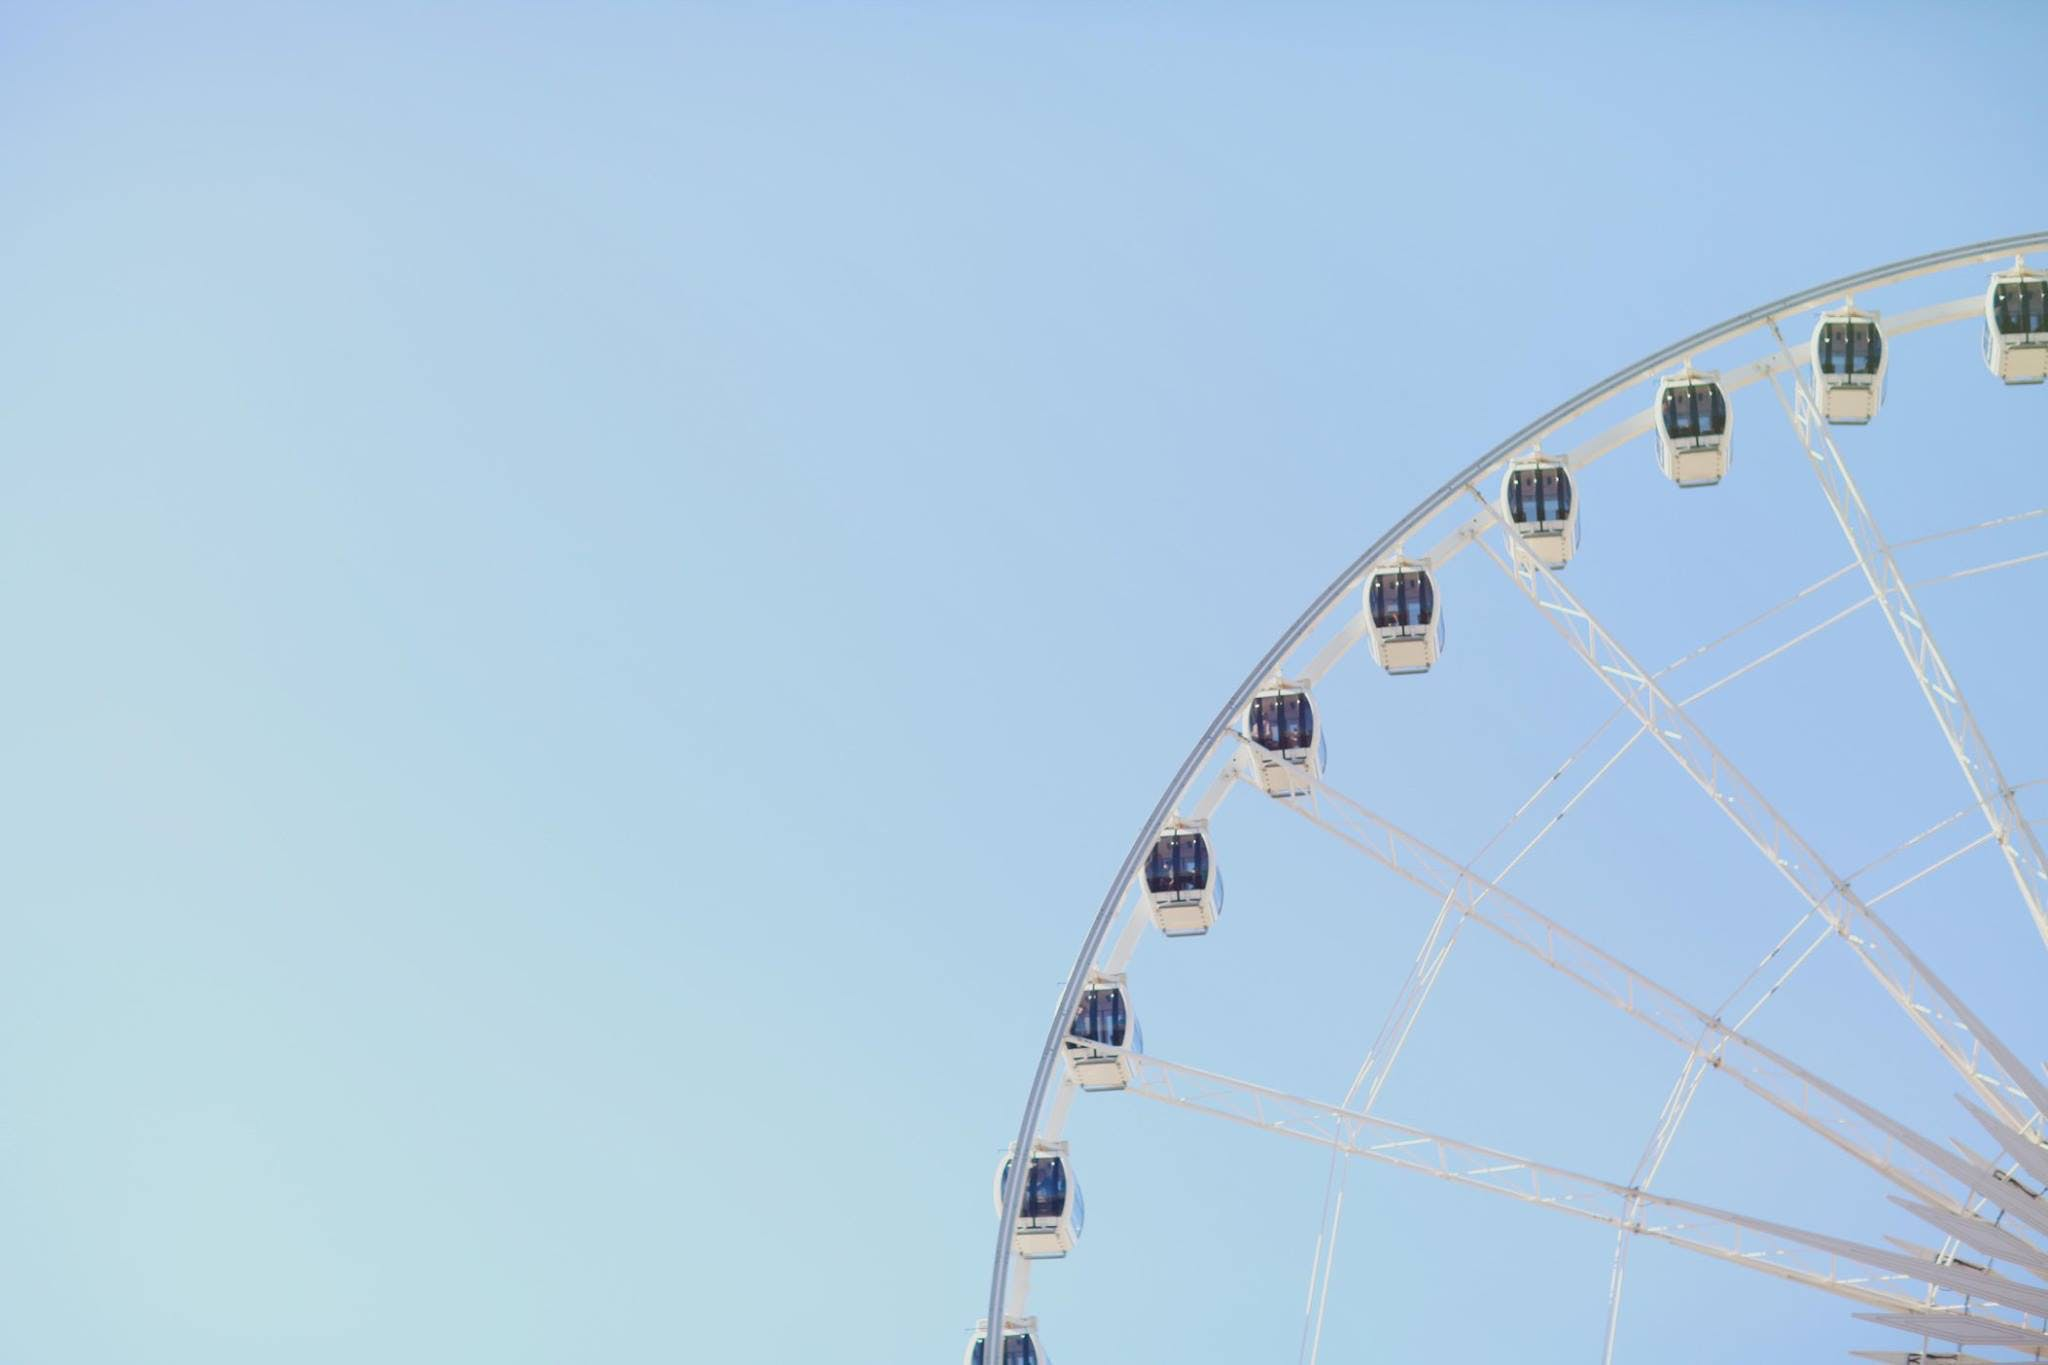 amusement park, blue sky, blur